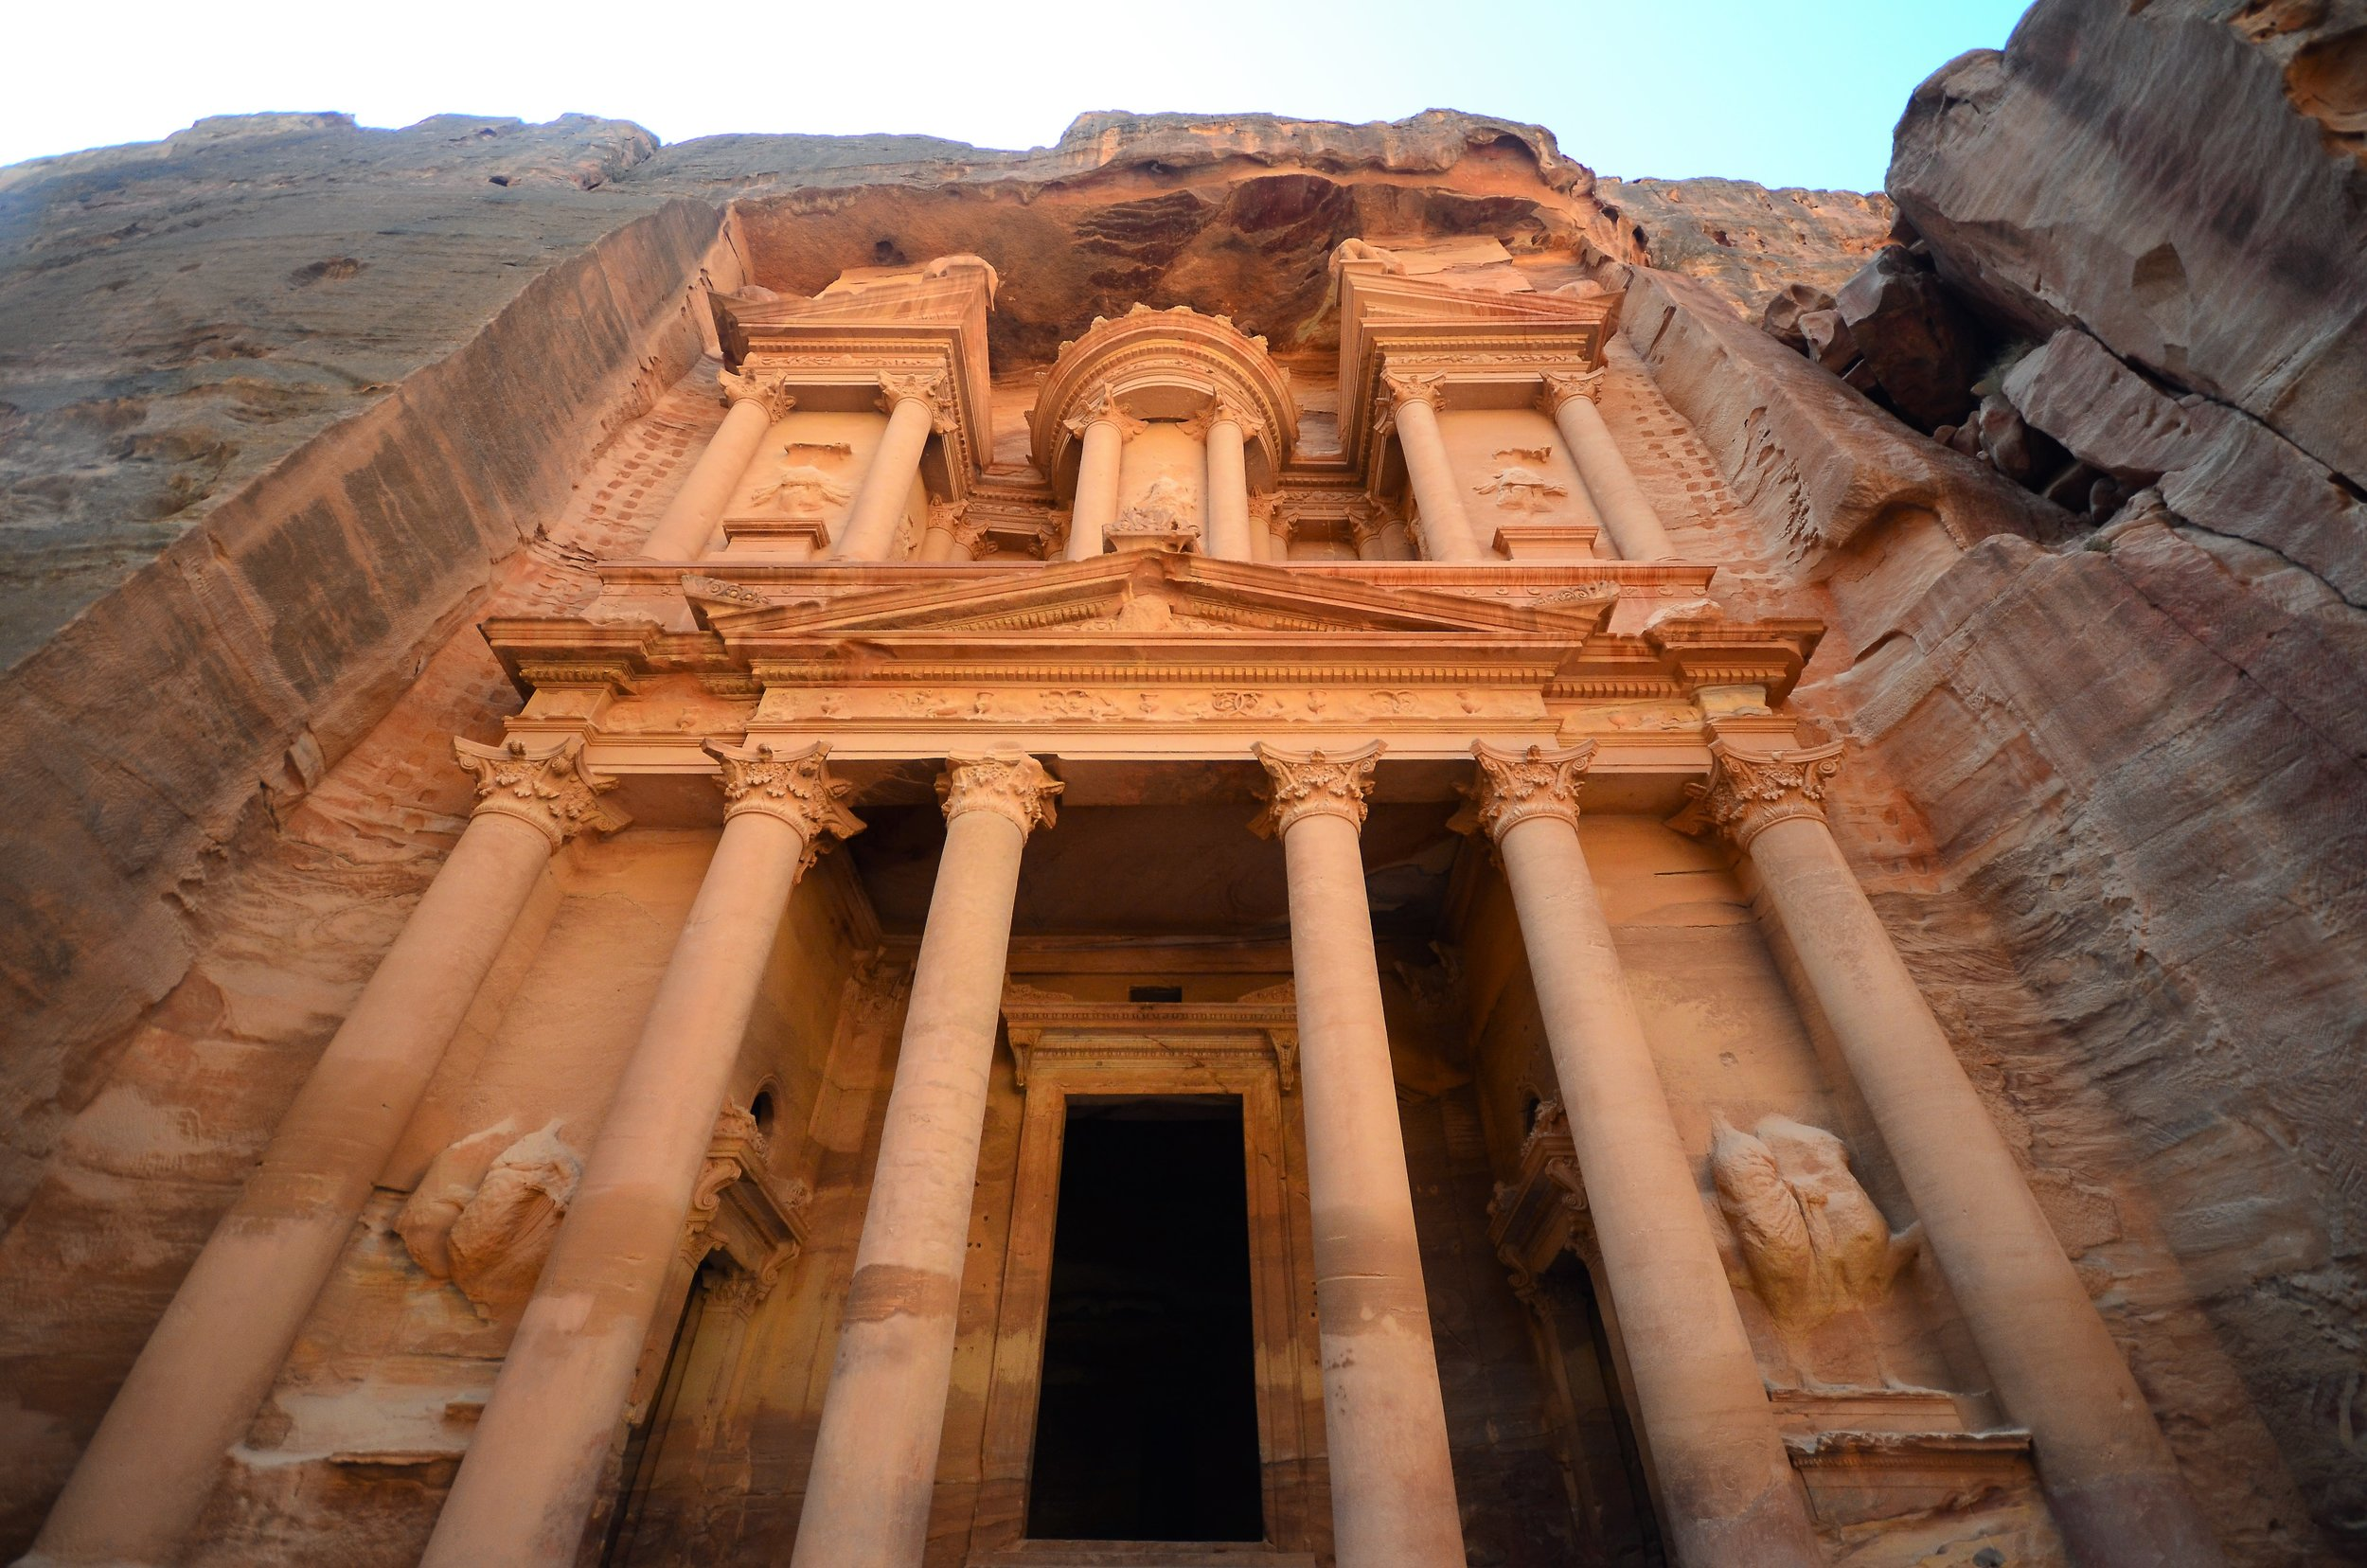 - Photography and Cultural Tour of JordanEXPLORE THE ANCIENT ROMANCE AND MYSTERY OF JORDAN: PETRA IS CALLING!Due to the expressed interest of many of you unable to go with us in 2019, we would be happy to revisit and offer our 2019 itinerary in 2020:Mid May 2020